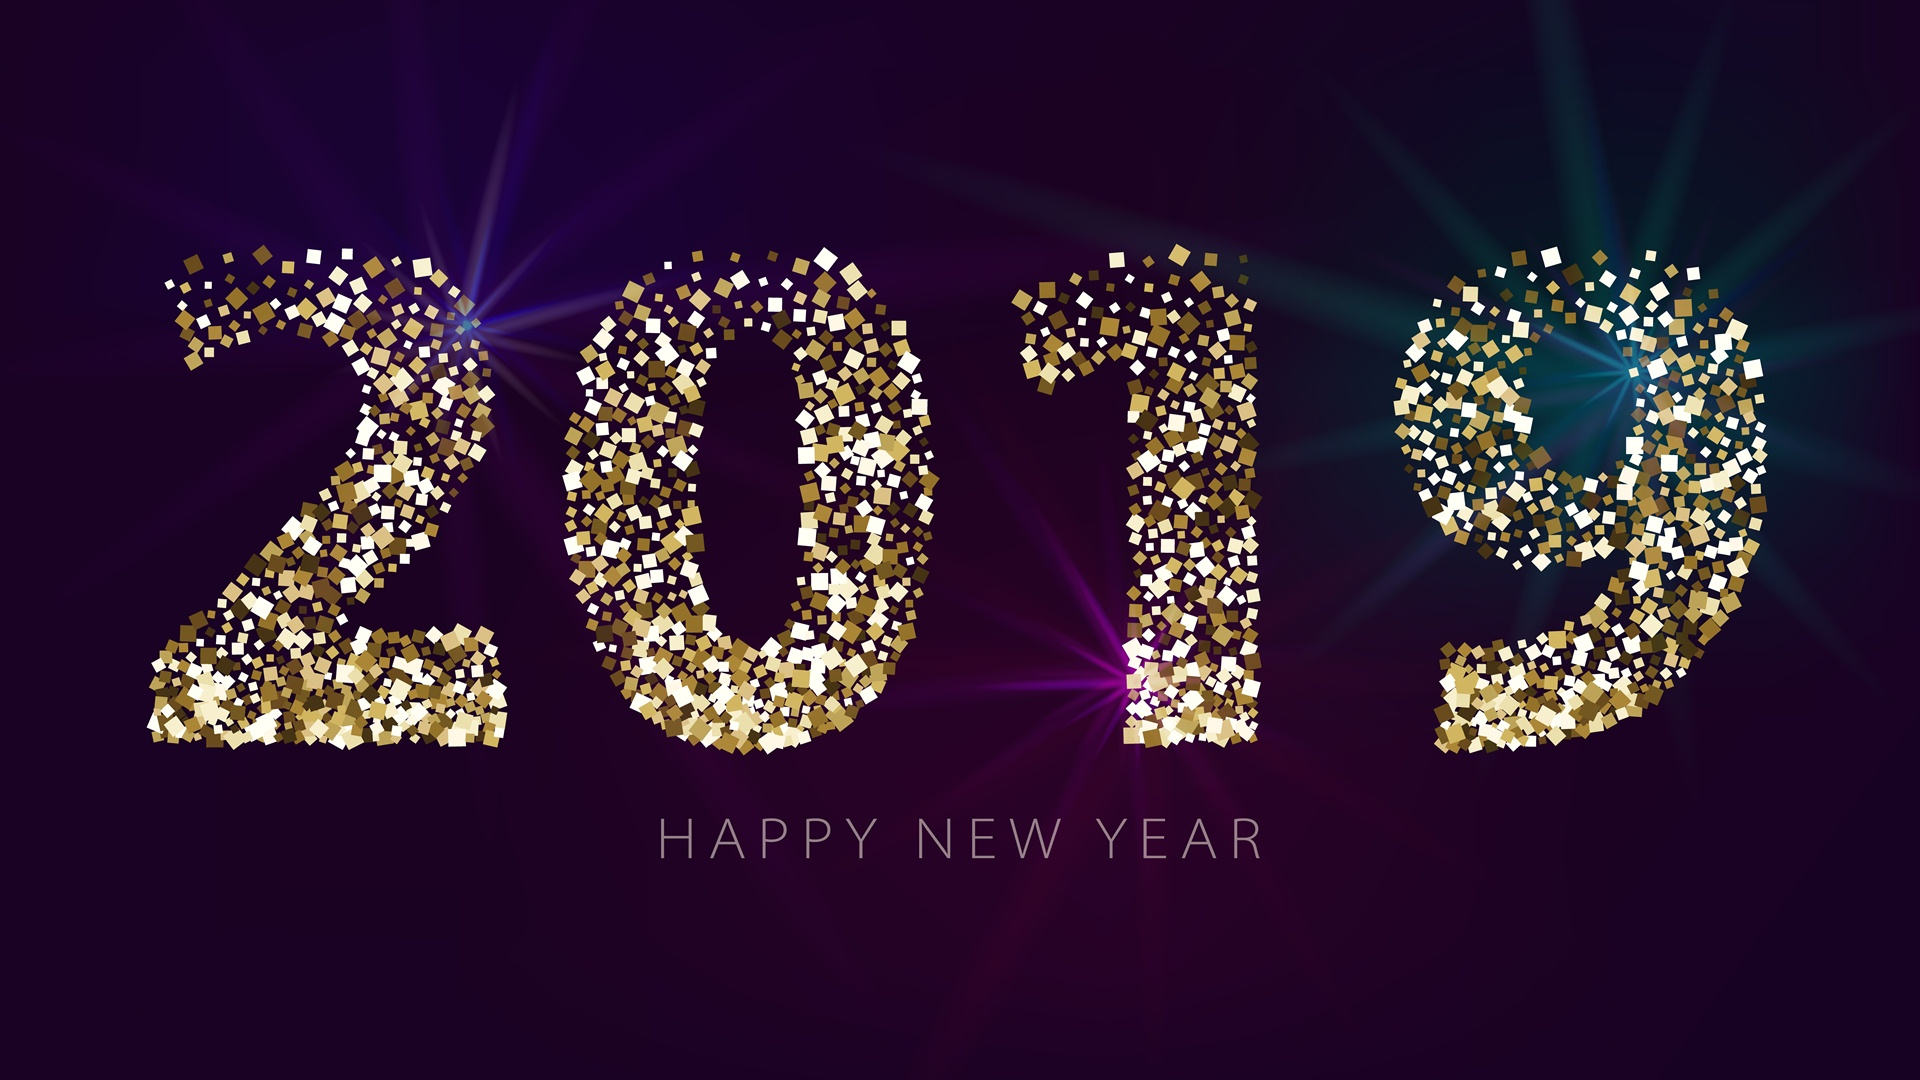 2019 Happy New Year Wallpaper High Quality 1920x1080